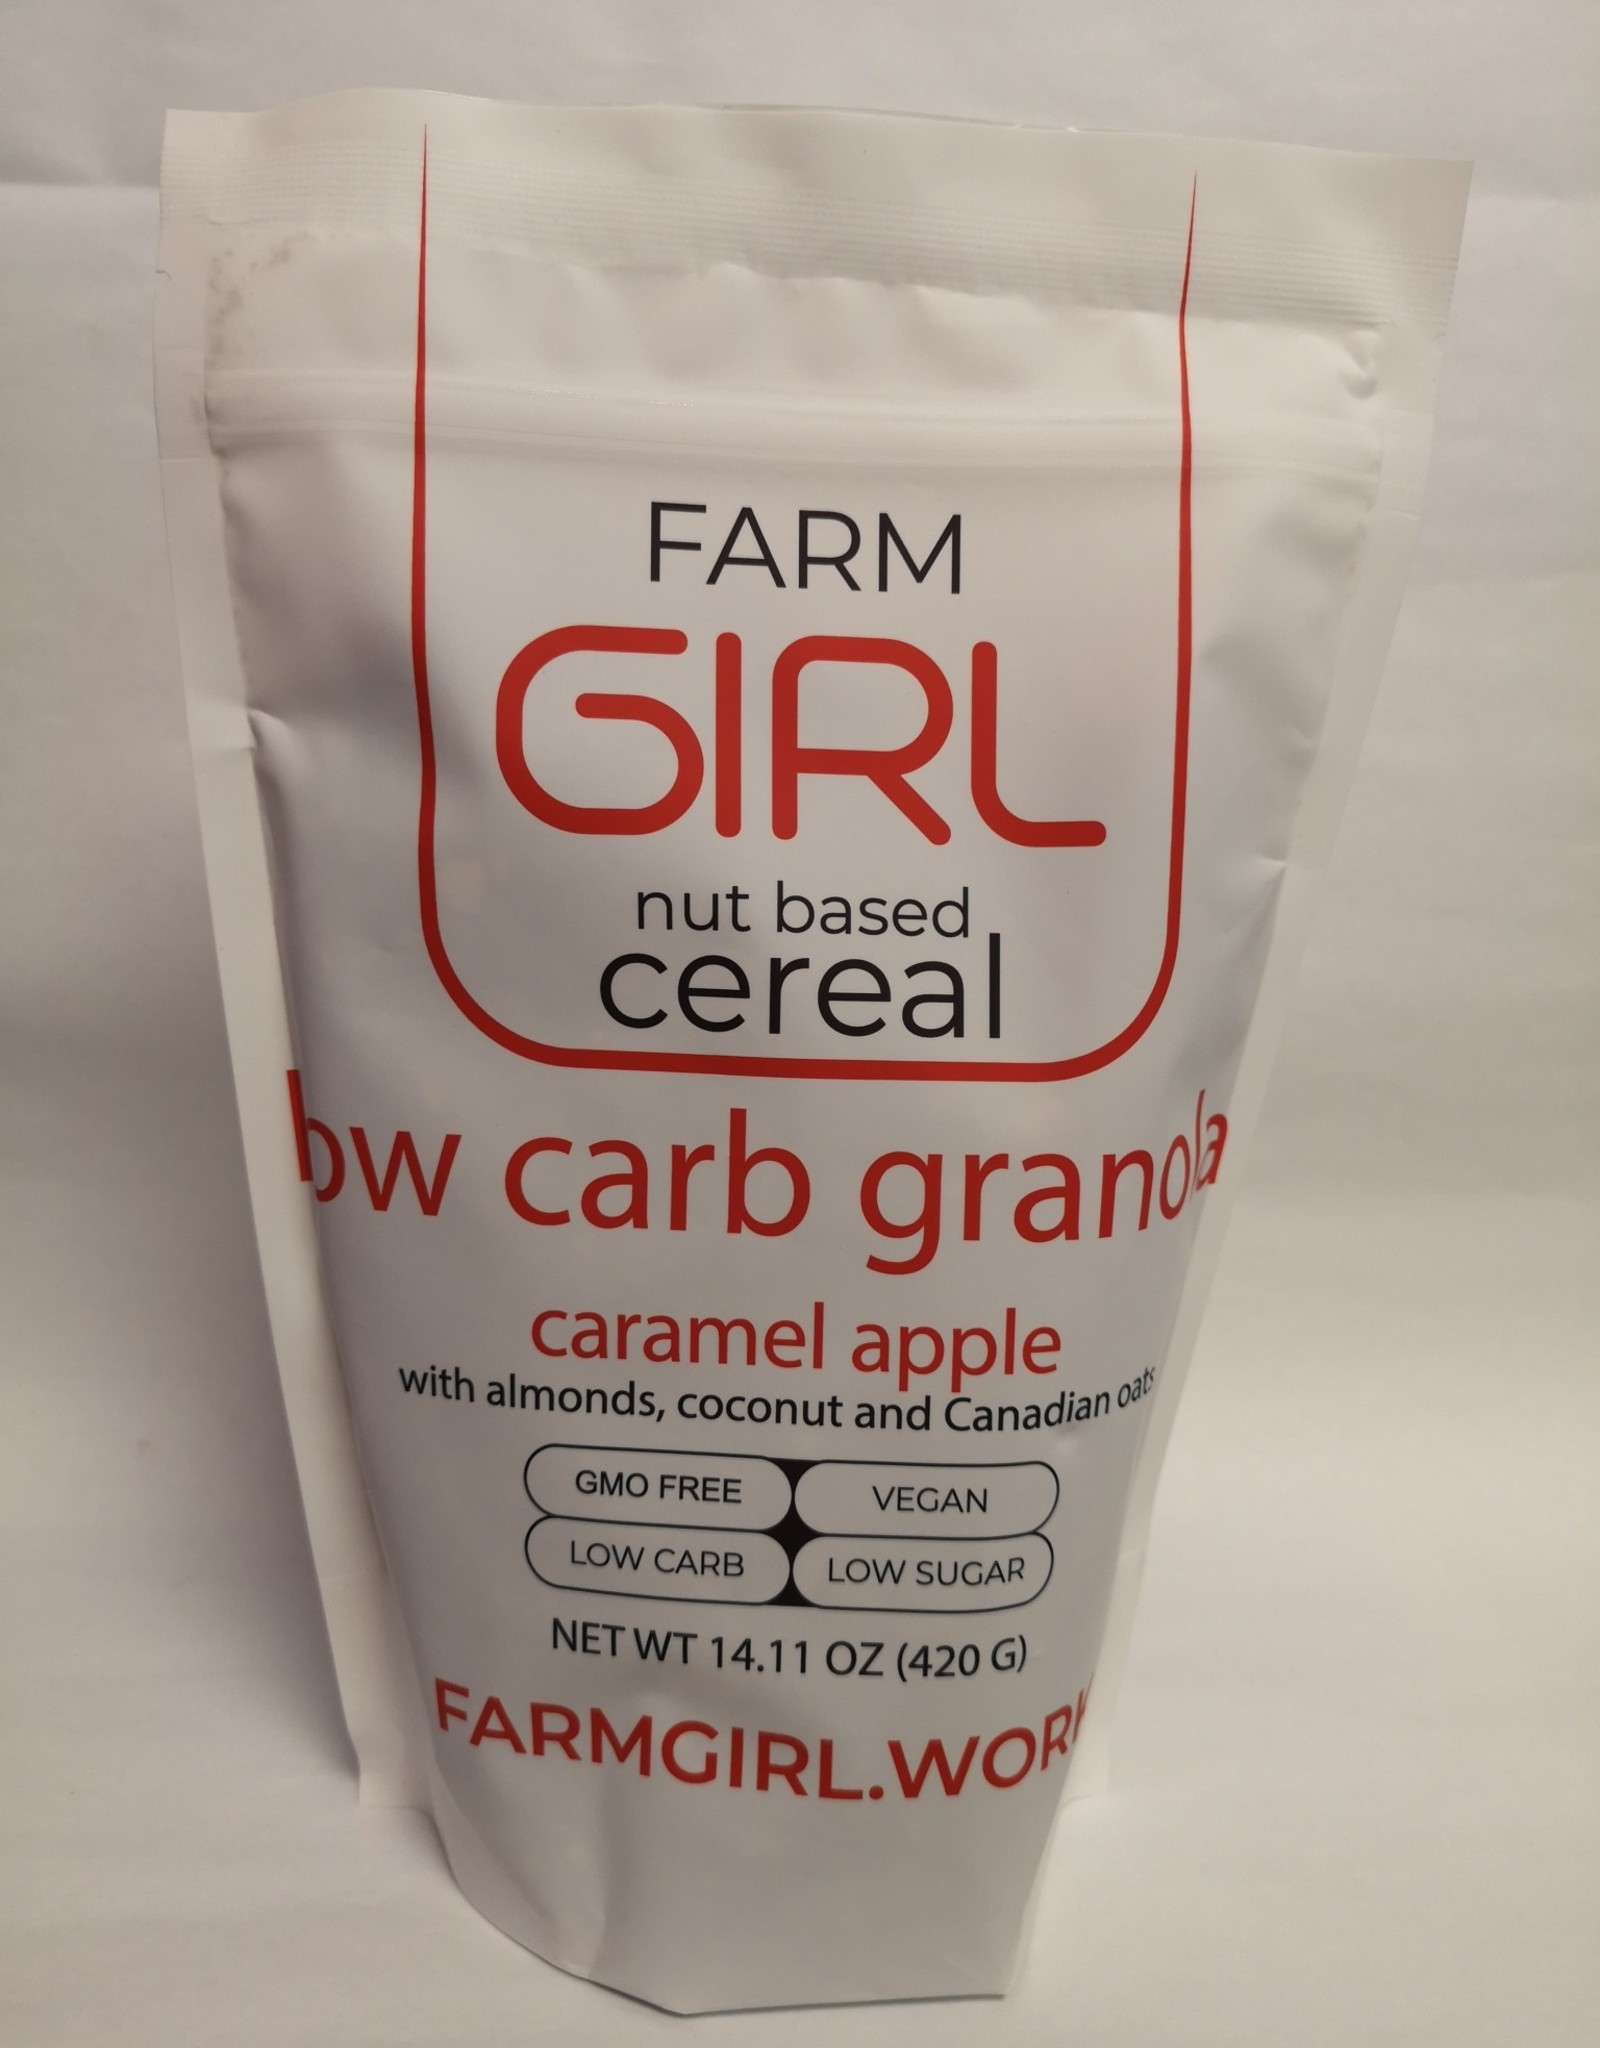 Farm Girl Farm Girl - Low Carb Granola, Caramel Apple Spice (420g)